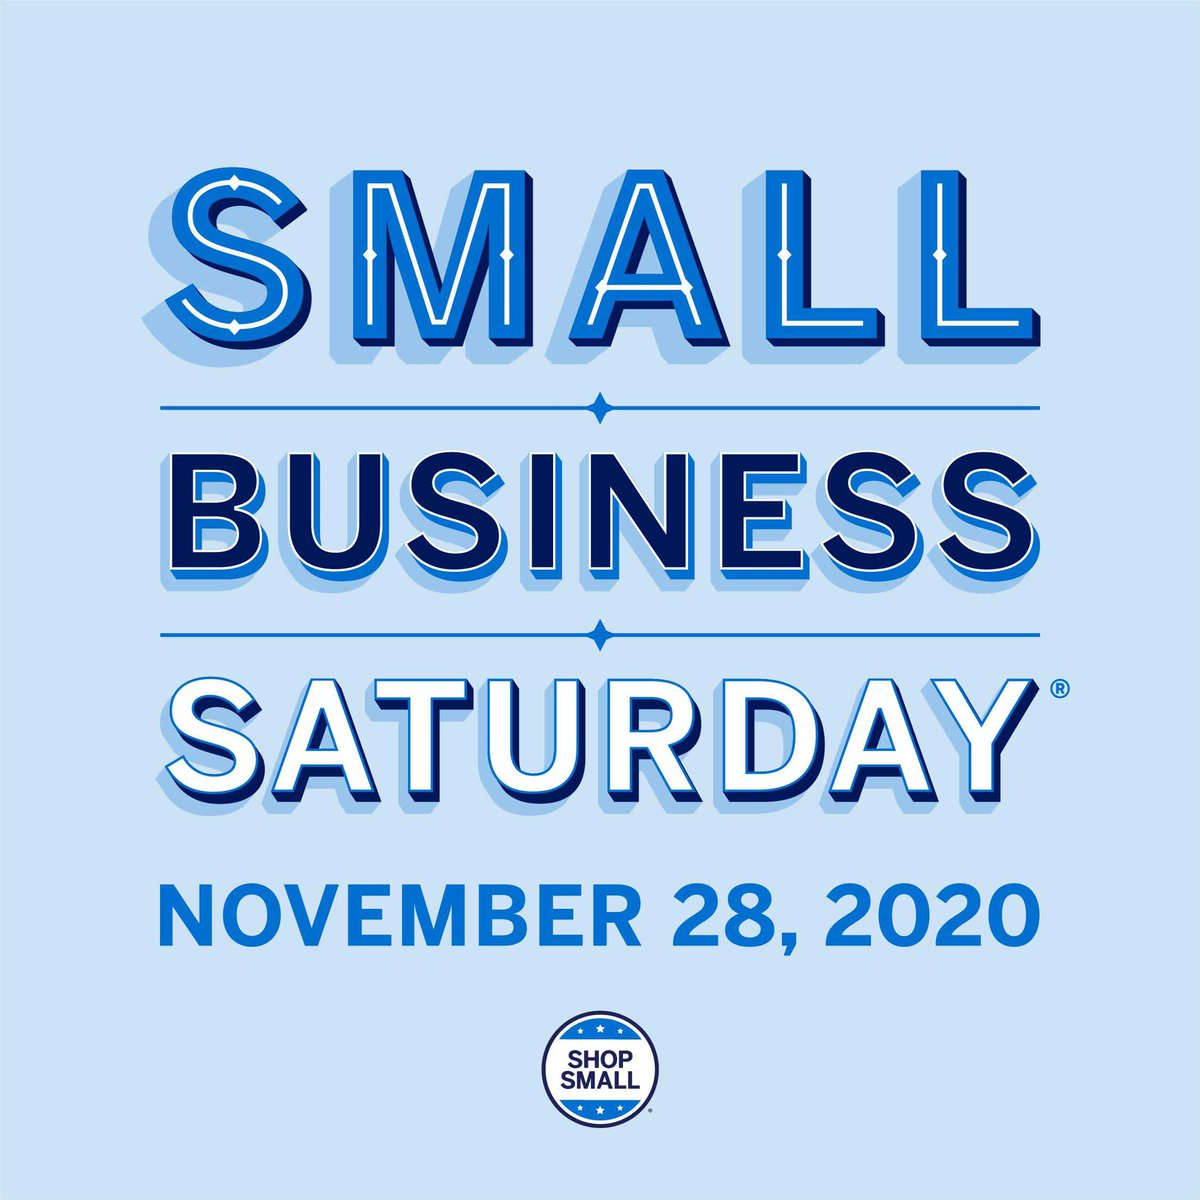 #SmallBusinessSaturday is a moment to respond to the struggles our small businesses are facing and pass a robust relief package that provides the smallest, most vulnerable businesses, including our mom-and-pop stores, with the support they need to make it through. #reliefnow